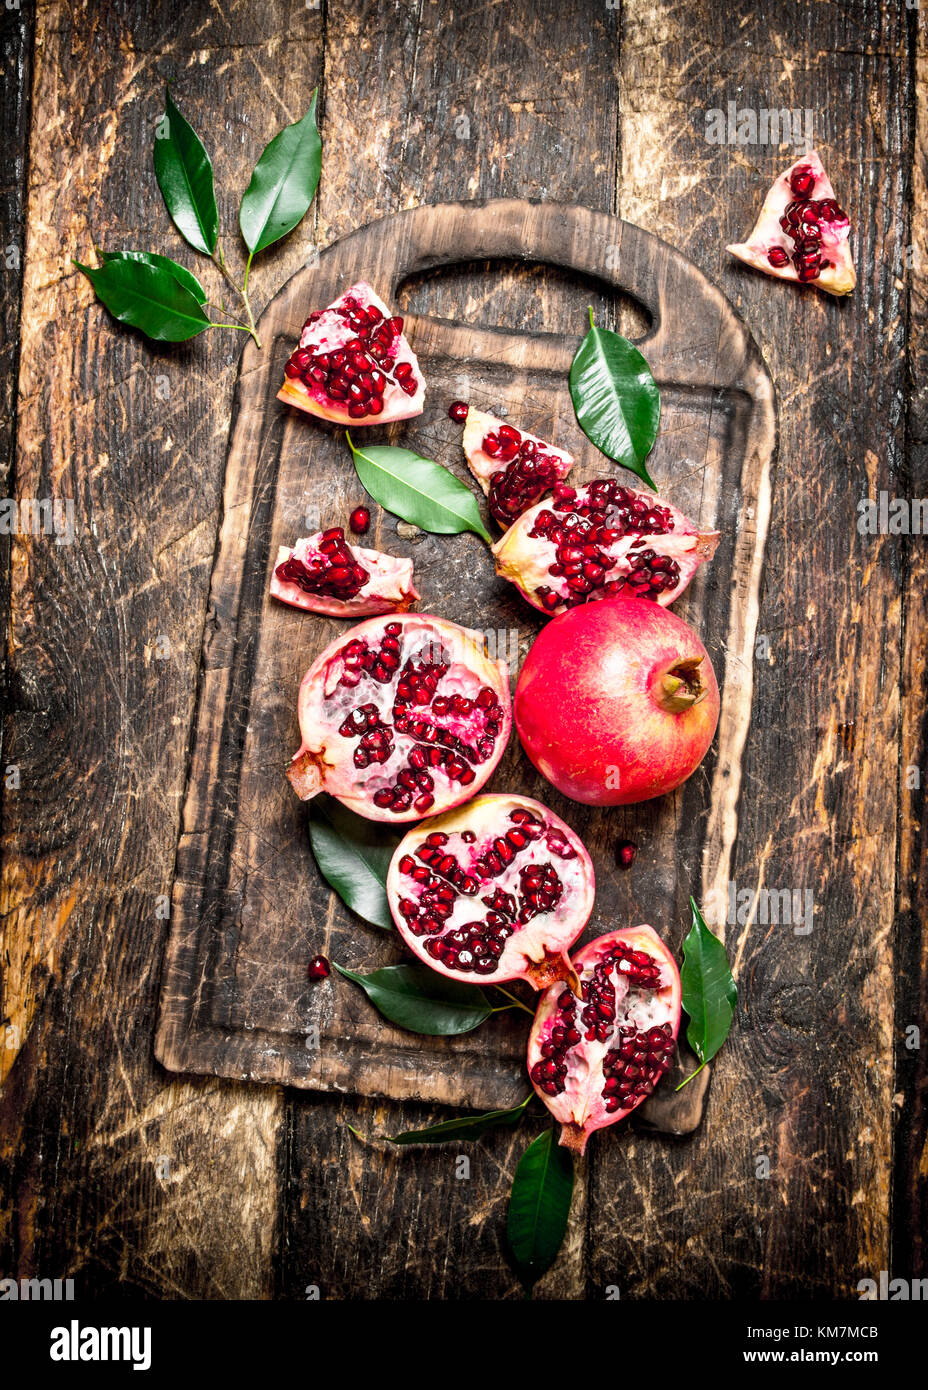 Ripe pomegranates on a cutting Board. On wooden background. - Stock Image